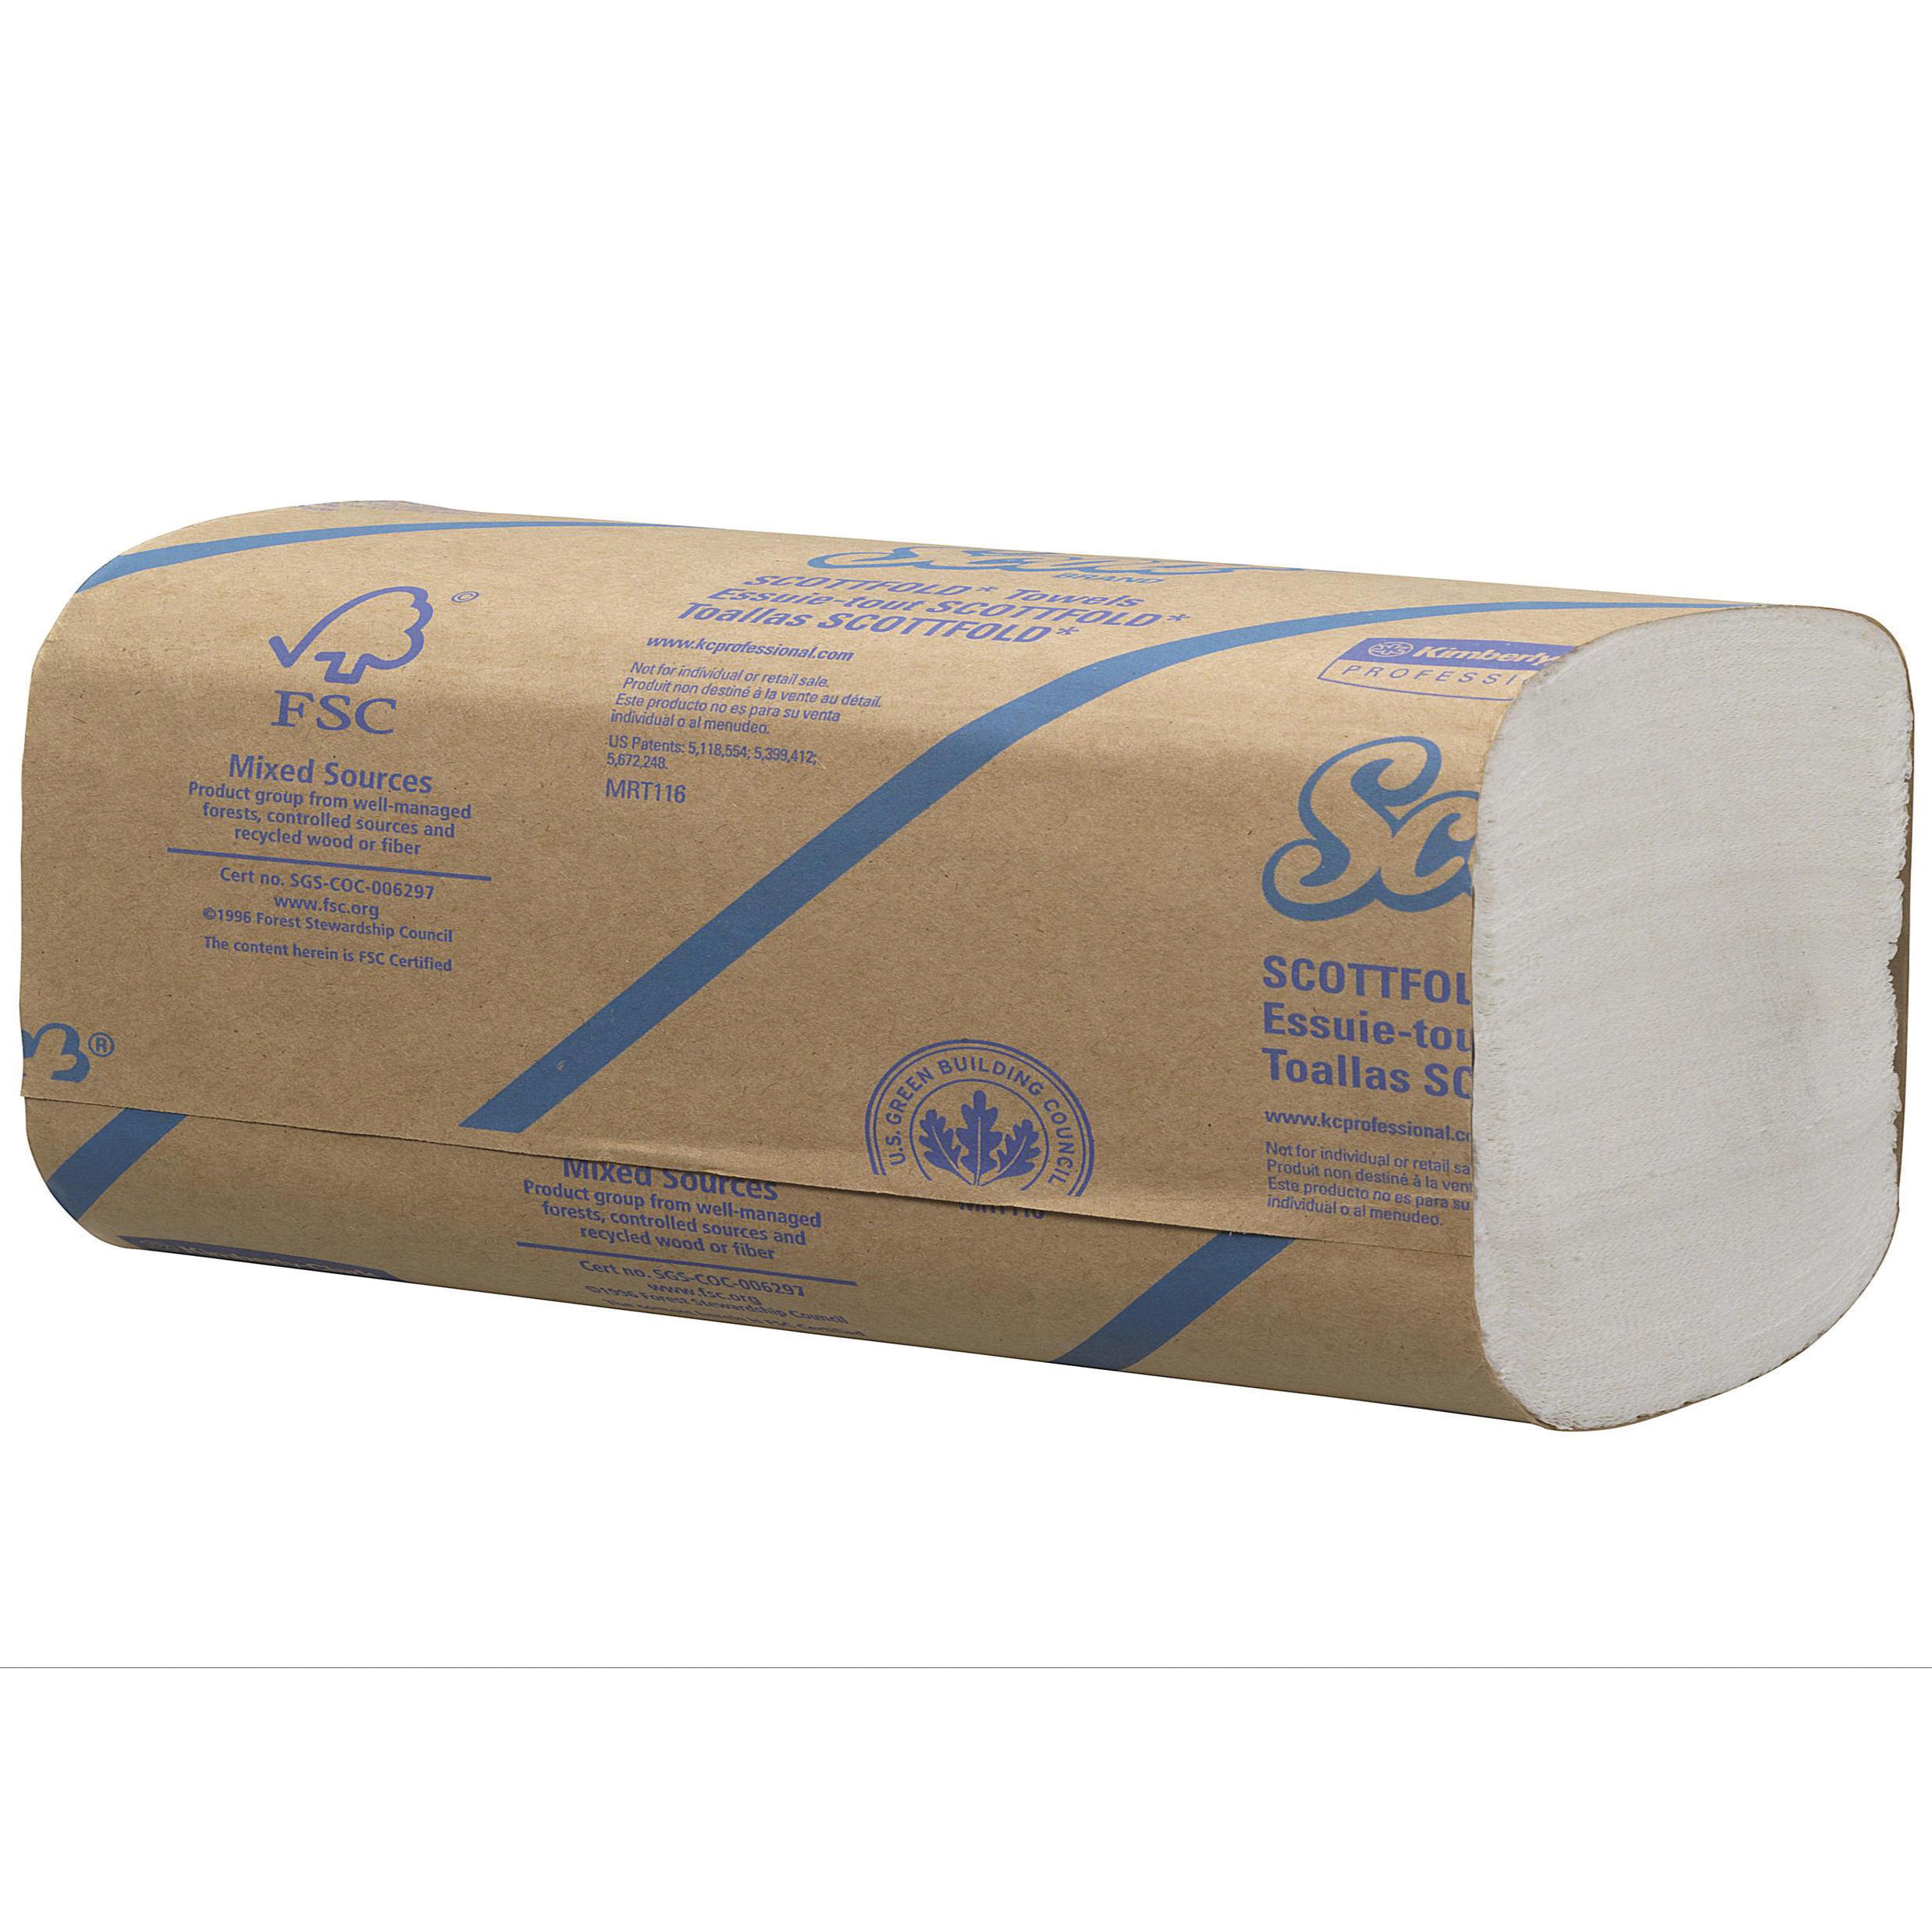 Scott Scottfold Hand Towels White 1 Ply 315x200mm 175 Towels per Sleeve Ref 6633 [Pack 25 Sleeves]